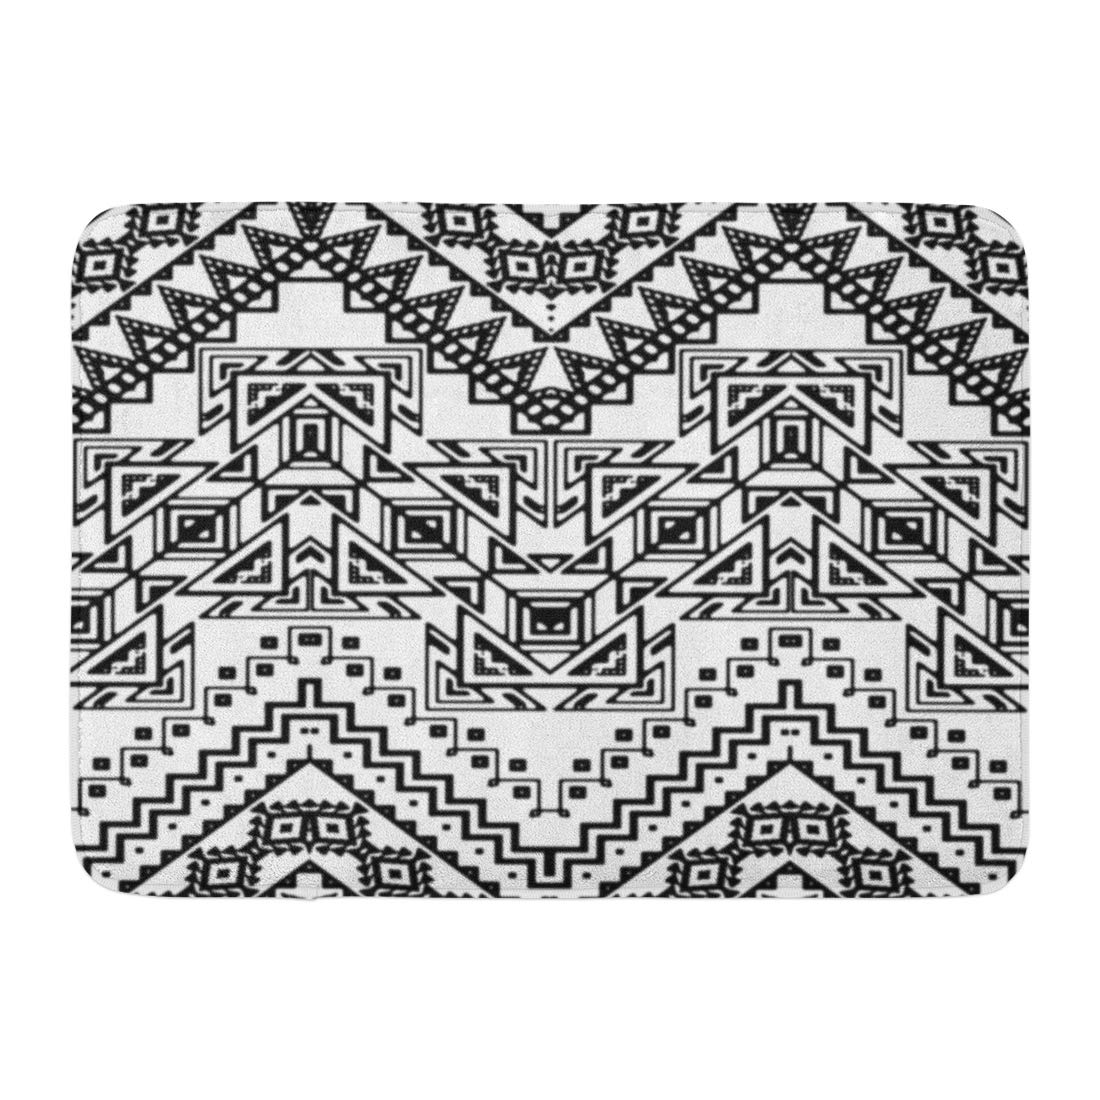 Black And White Chevron Bathroom Rug: GODPOK Africa Summer Chevron Pattern With Aztec Ethnic And